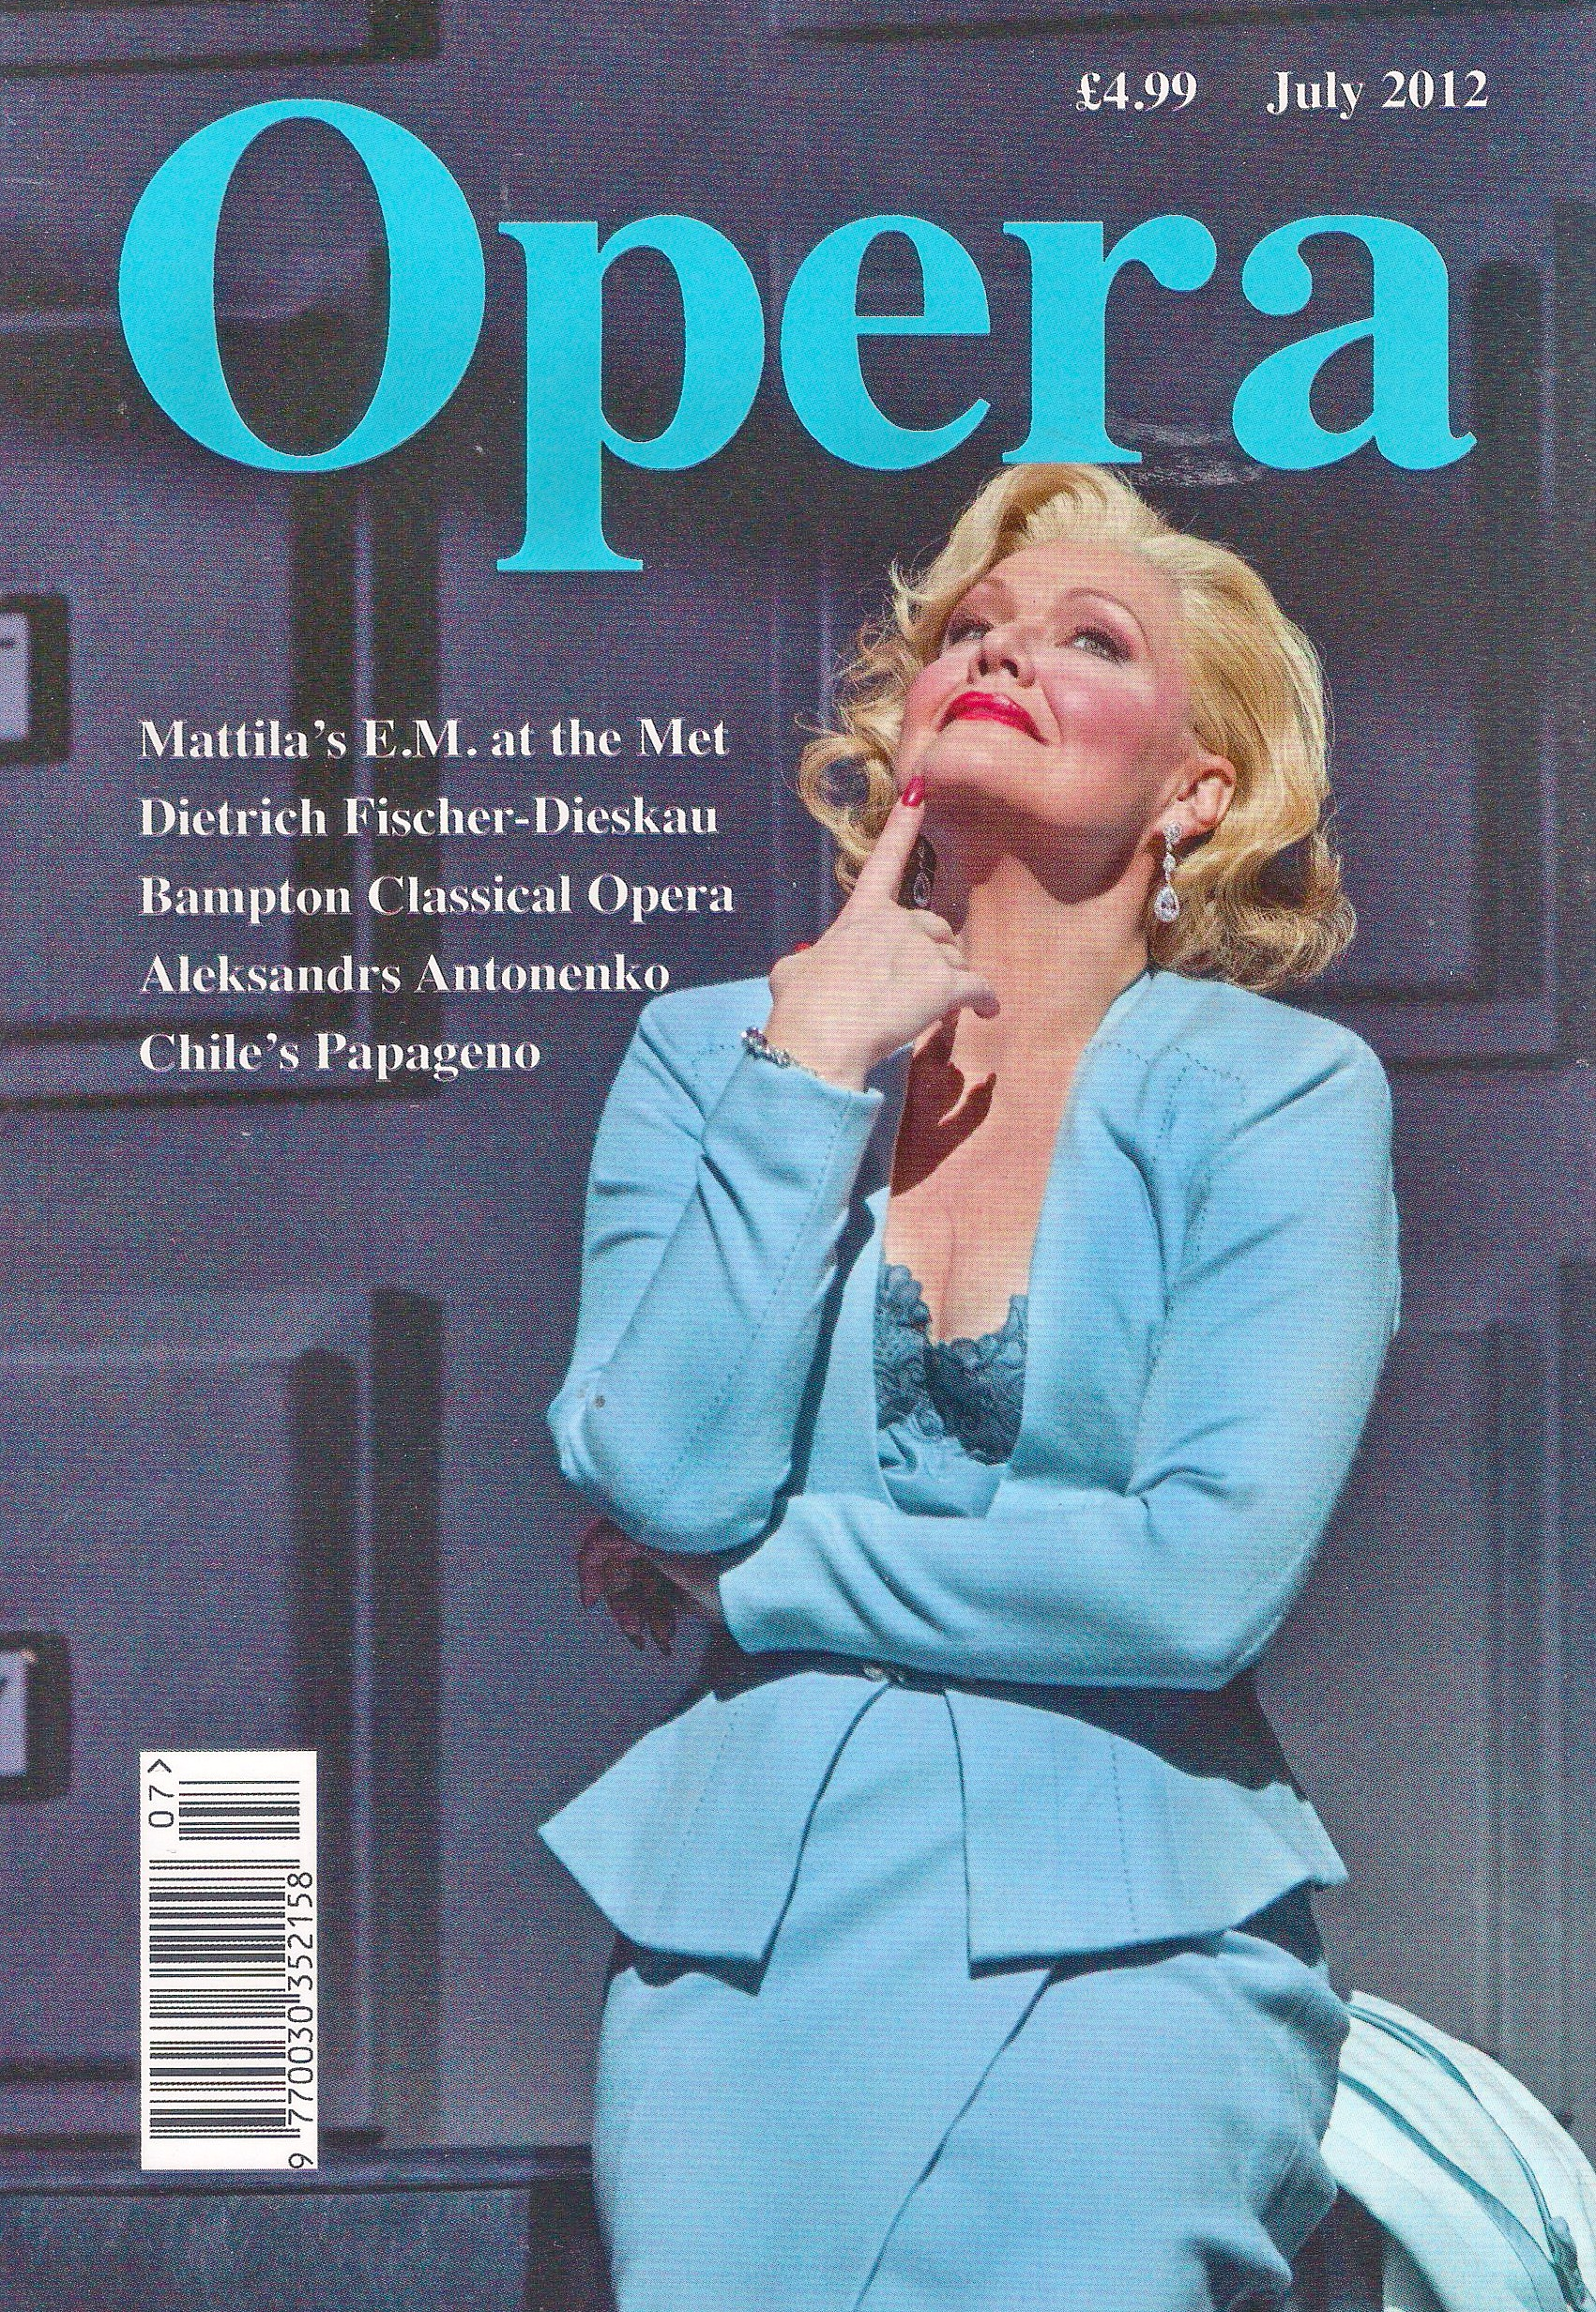 Opera magazine cover (2012) - I Remember the Ship, composed by Jude Obermüller.jpeg